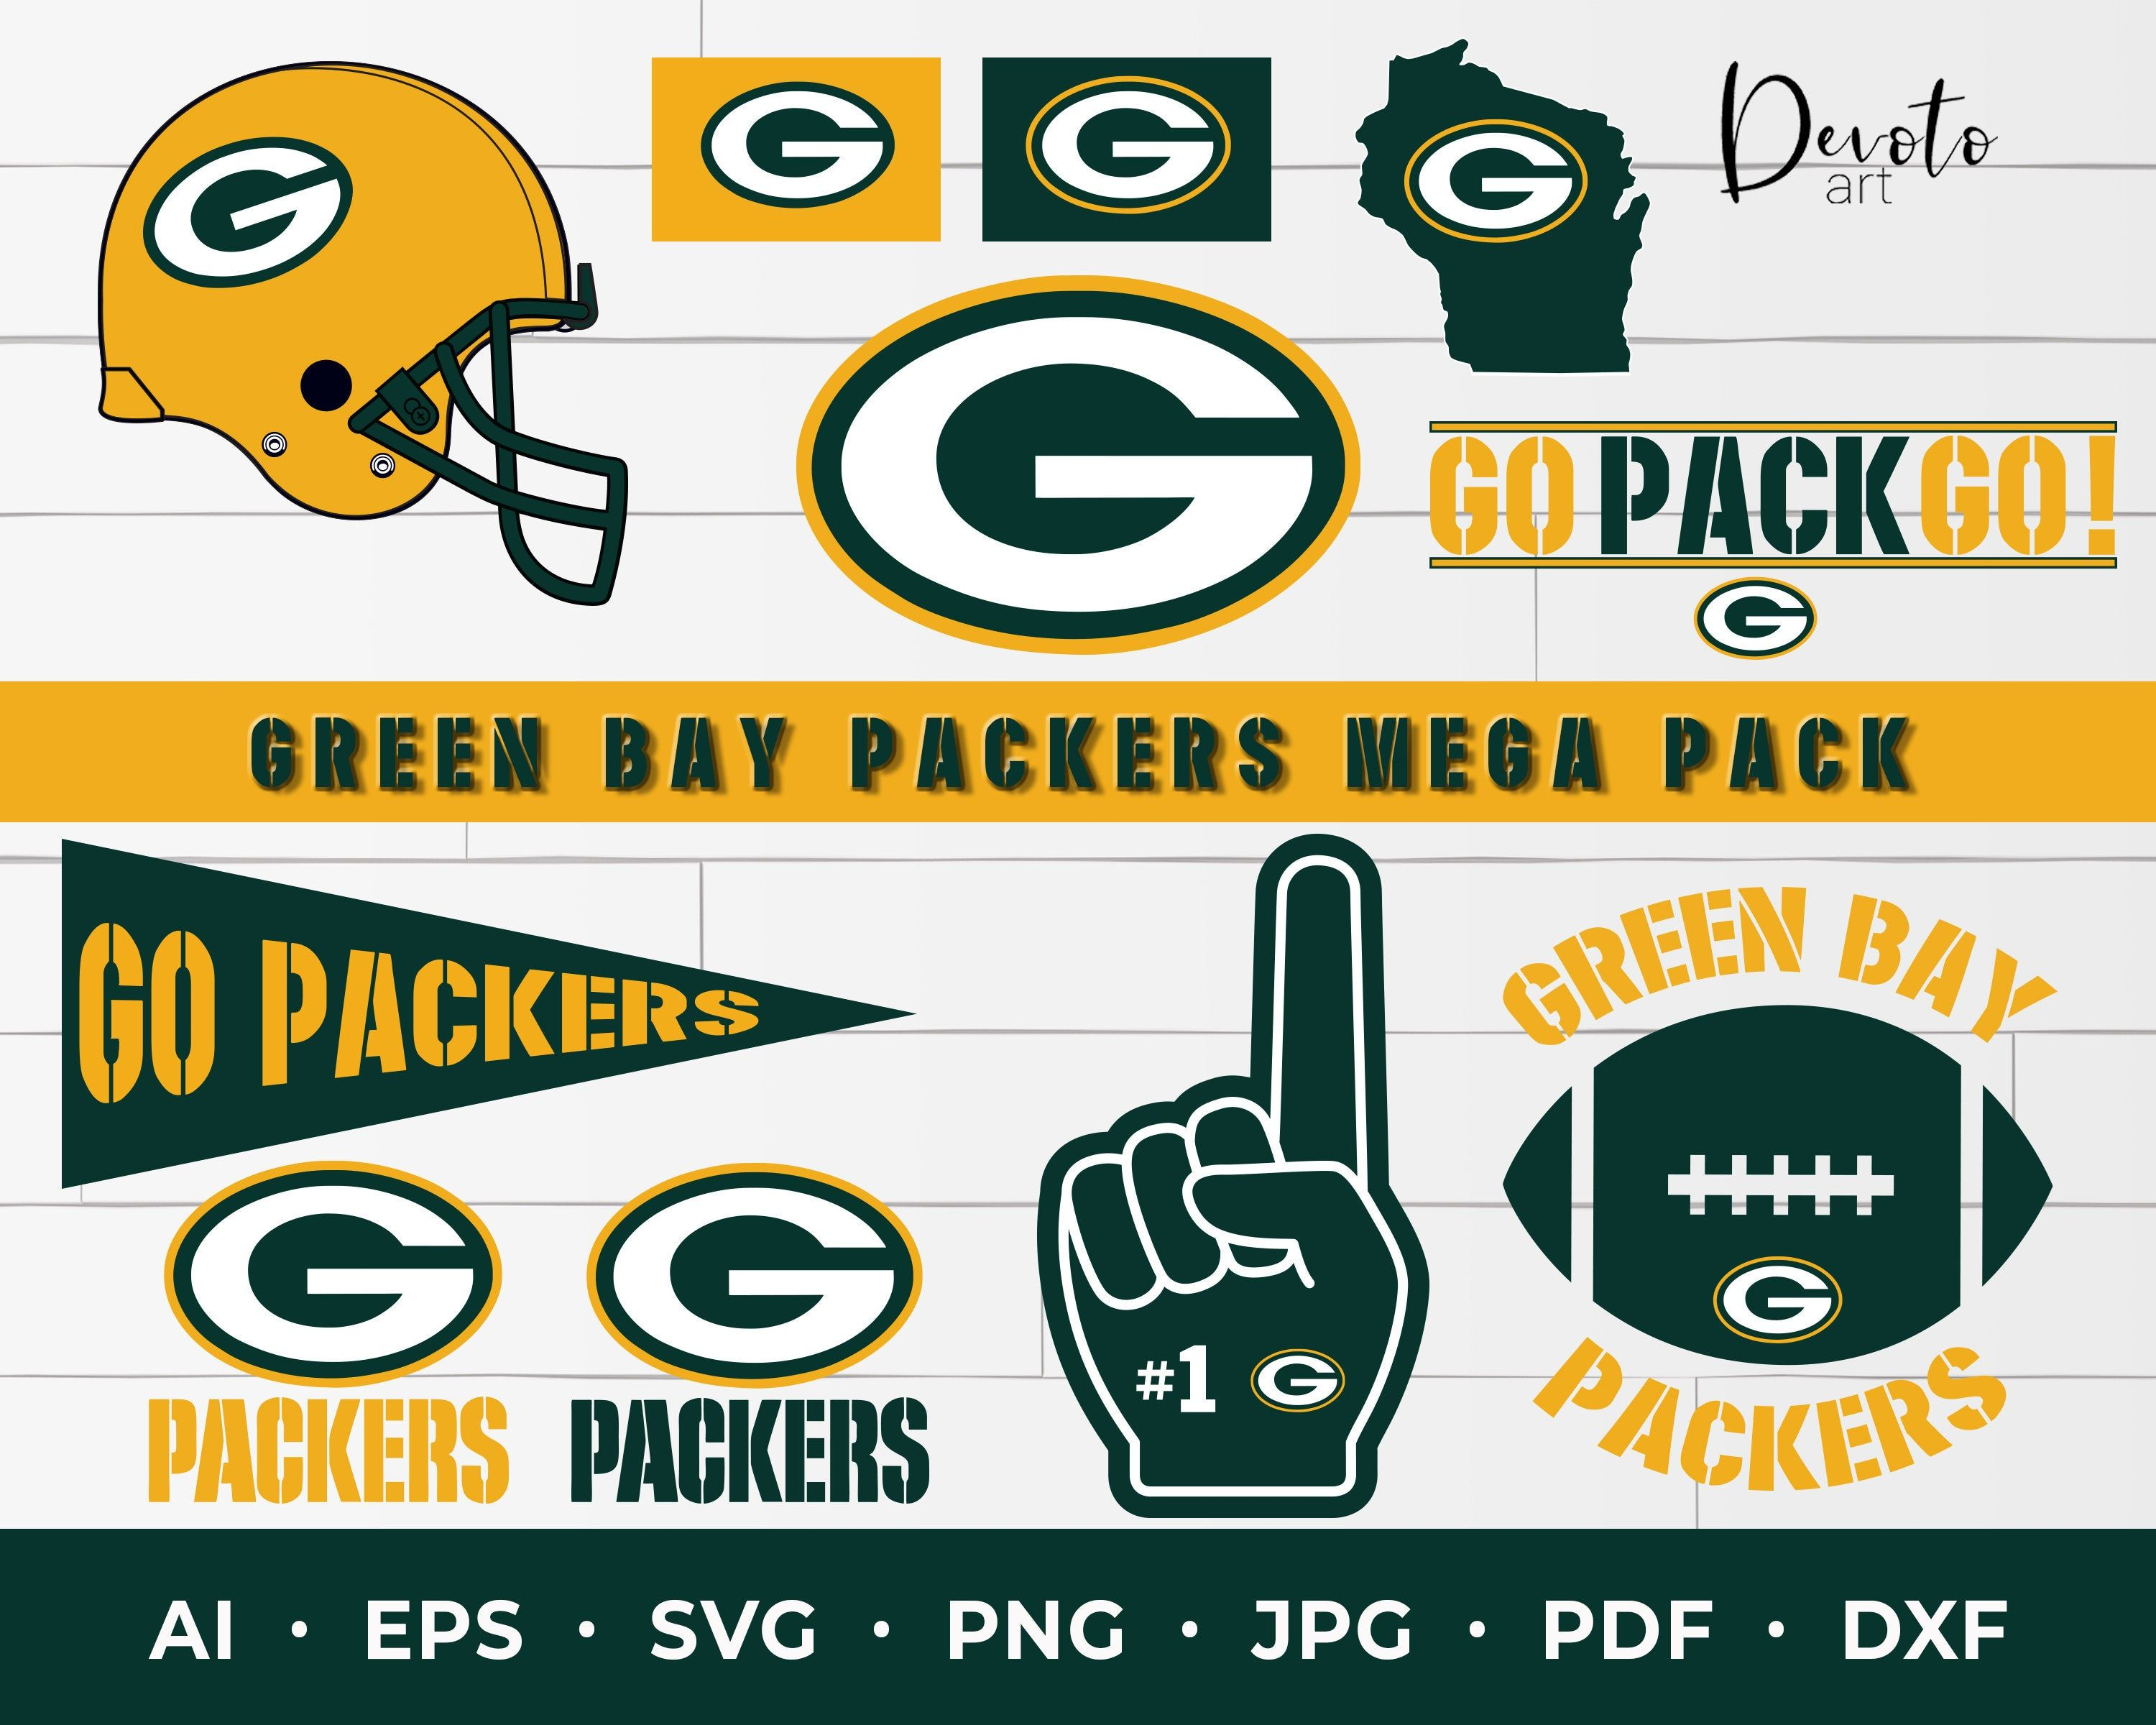 Green Bay Packers Svg Packers Mega Pack Svg Packers Svg Etsy In 2020 Packers Green Bay Packers Green Bay